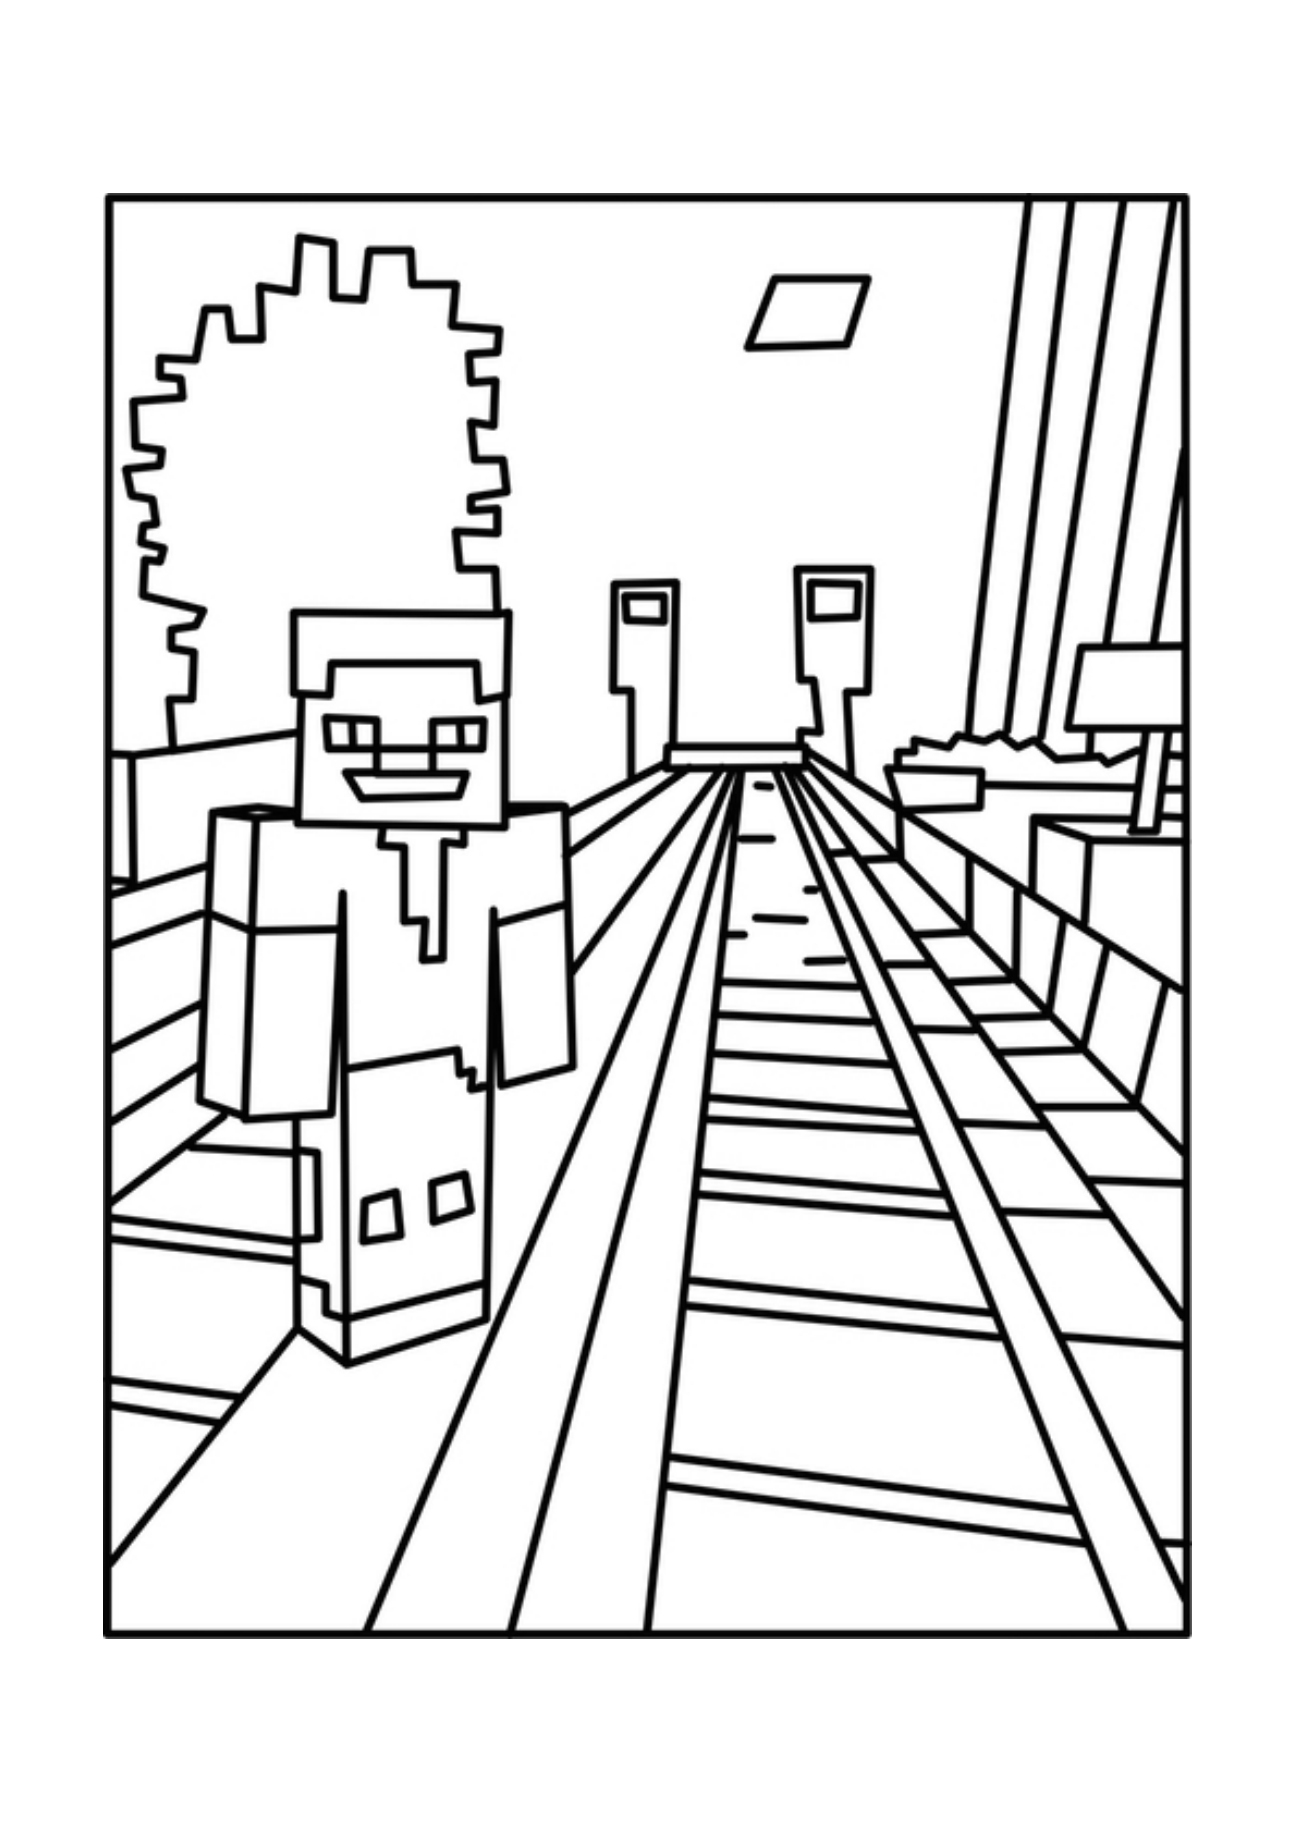 minecraft colouring pages free minecraft coloring pages best coloring pages for kids colouring pages free minecraft